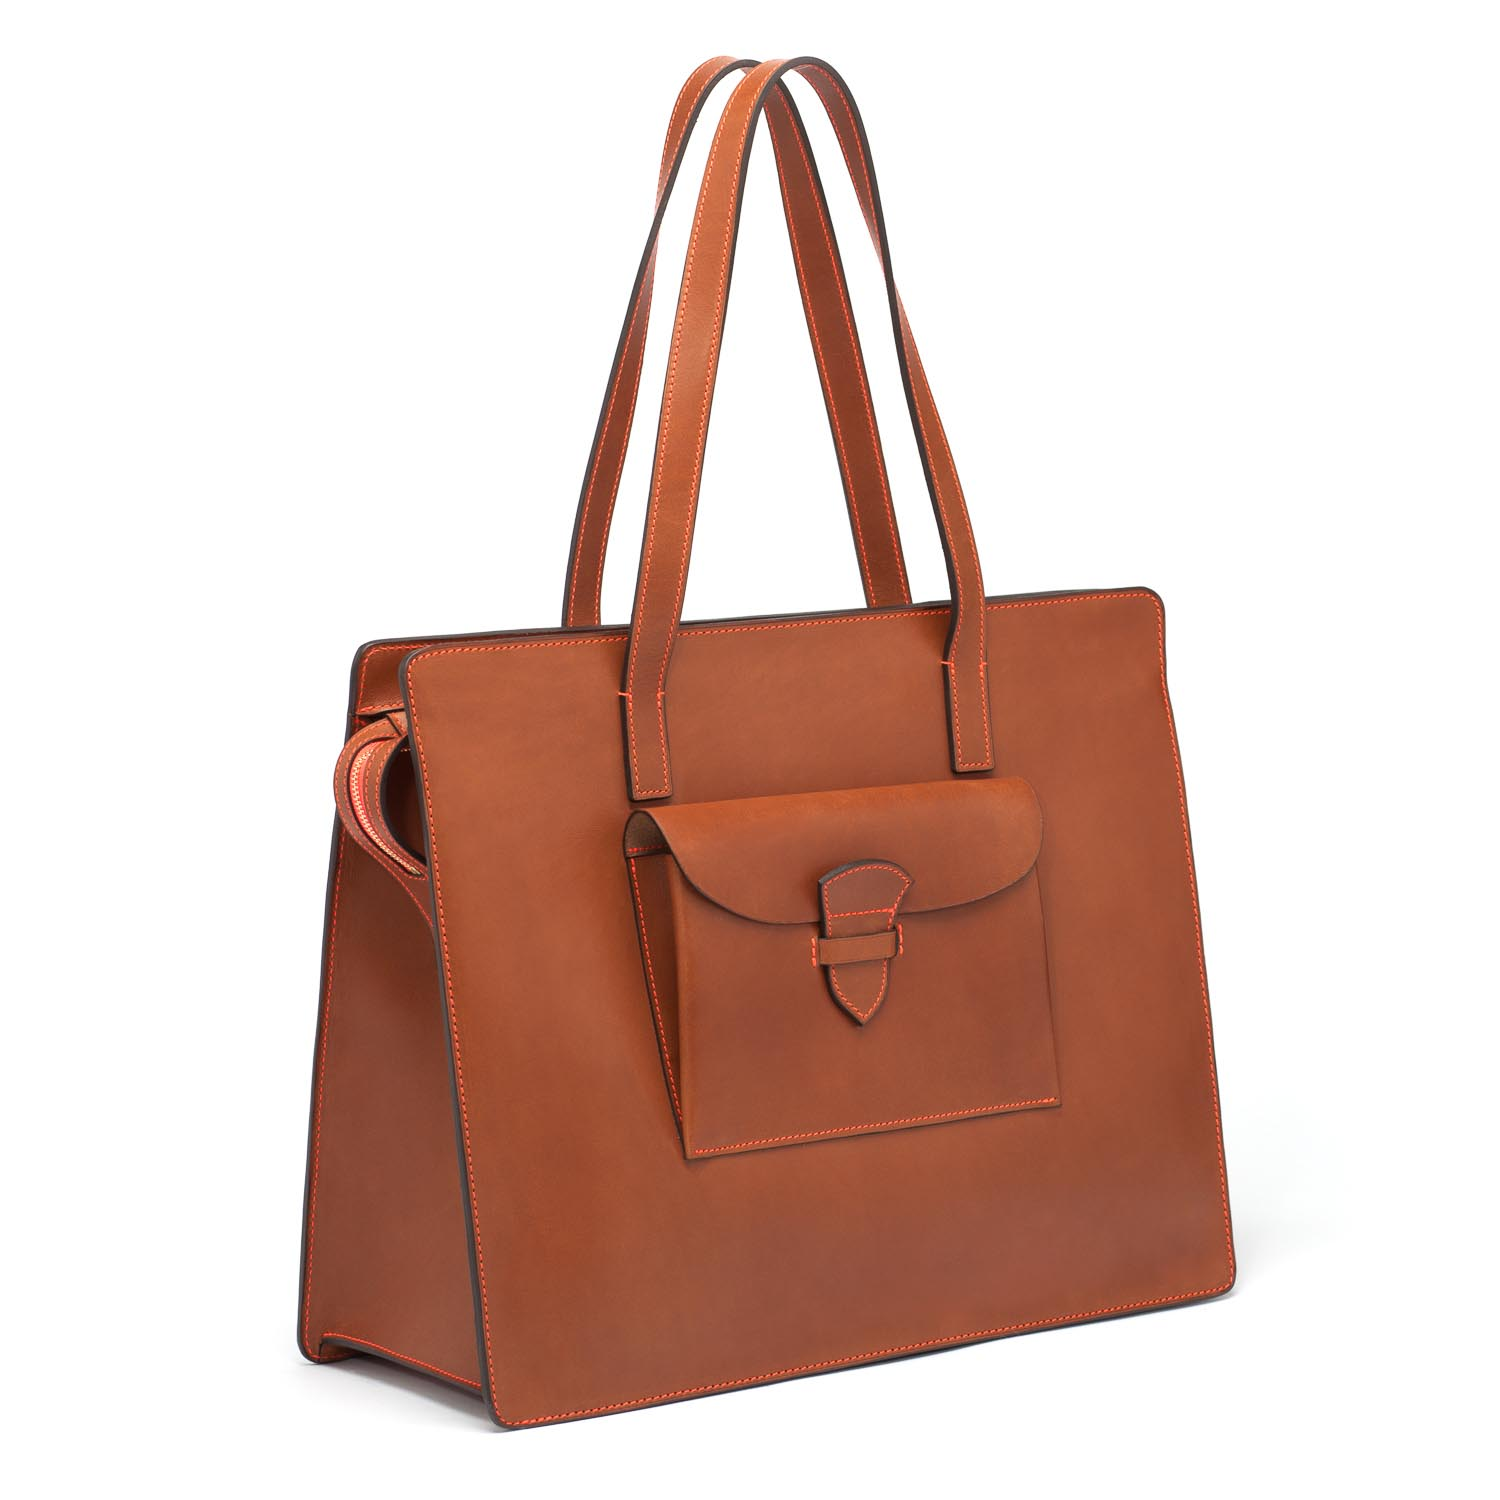 Sac en cuir de Veau Pulsation Cognac/fil Orange fluo - Maison Thomas